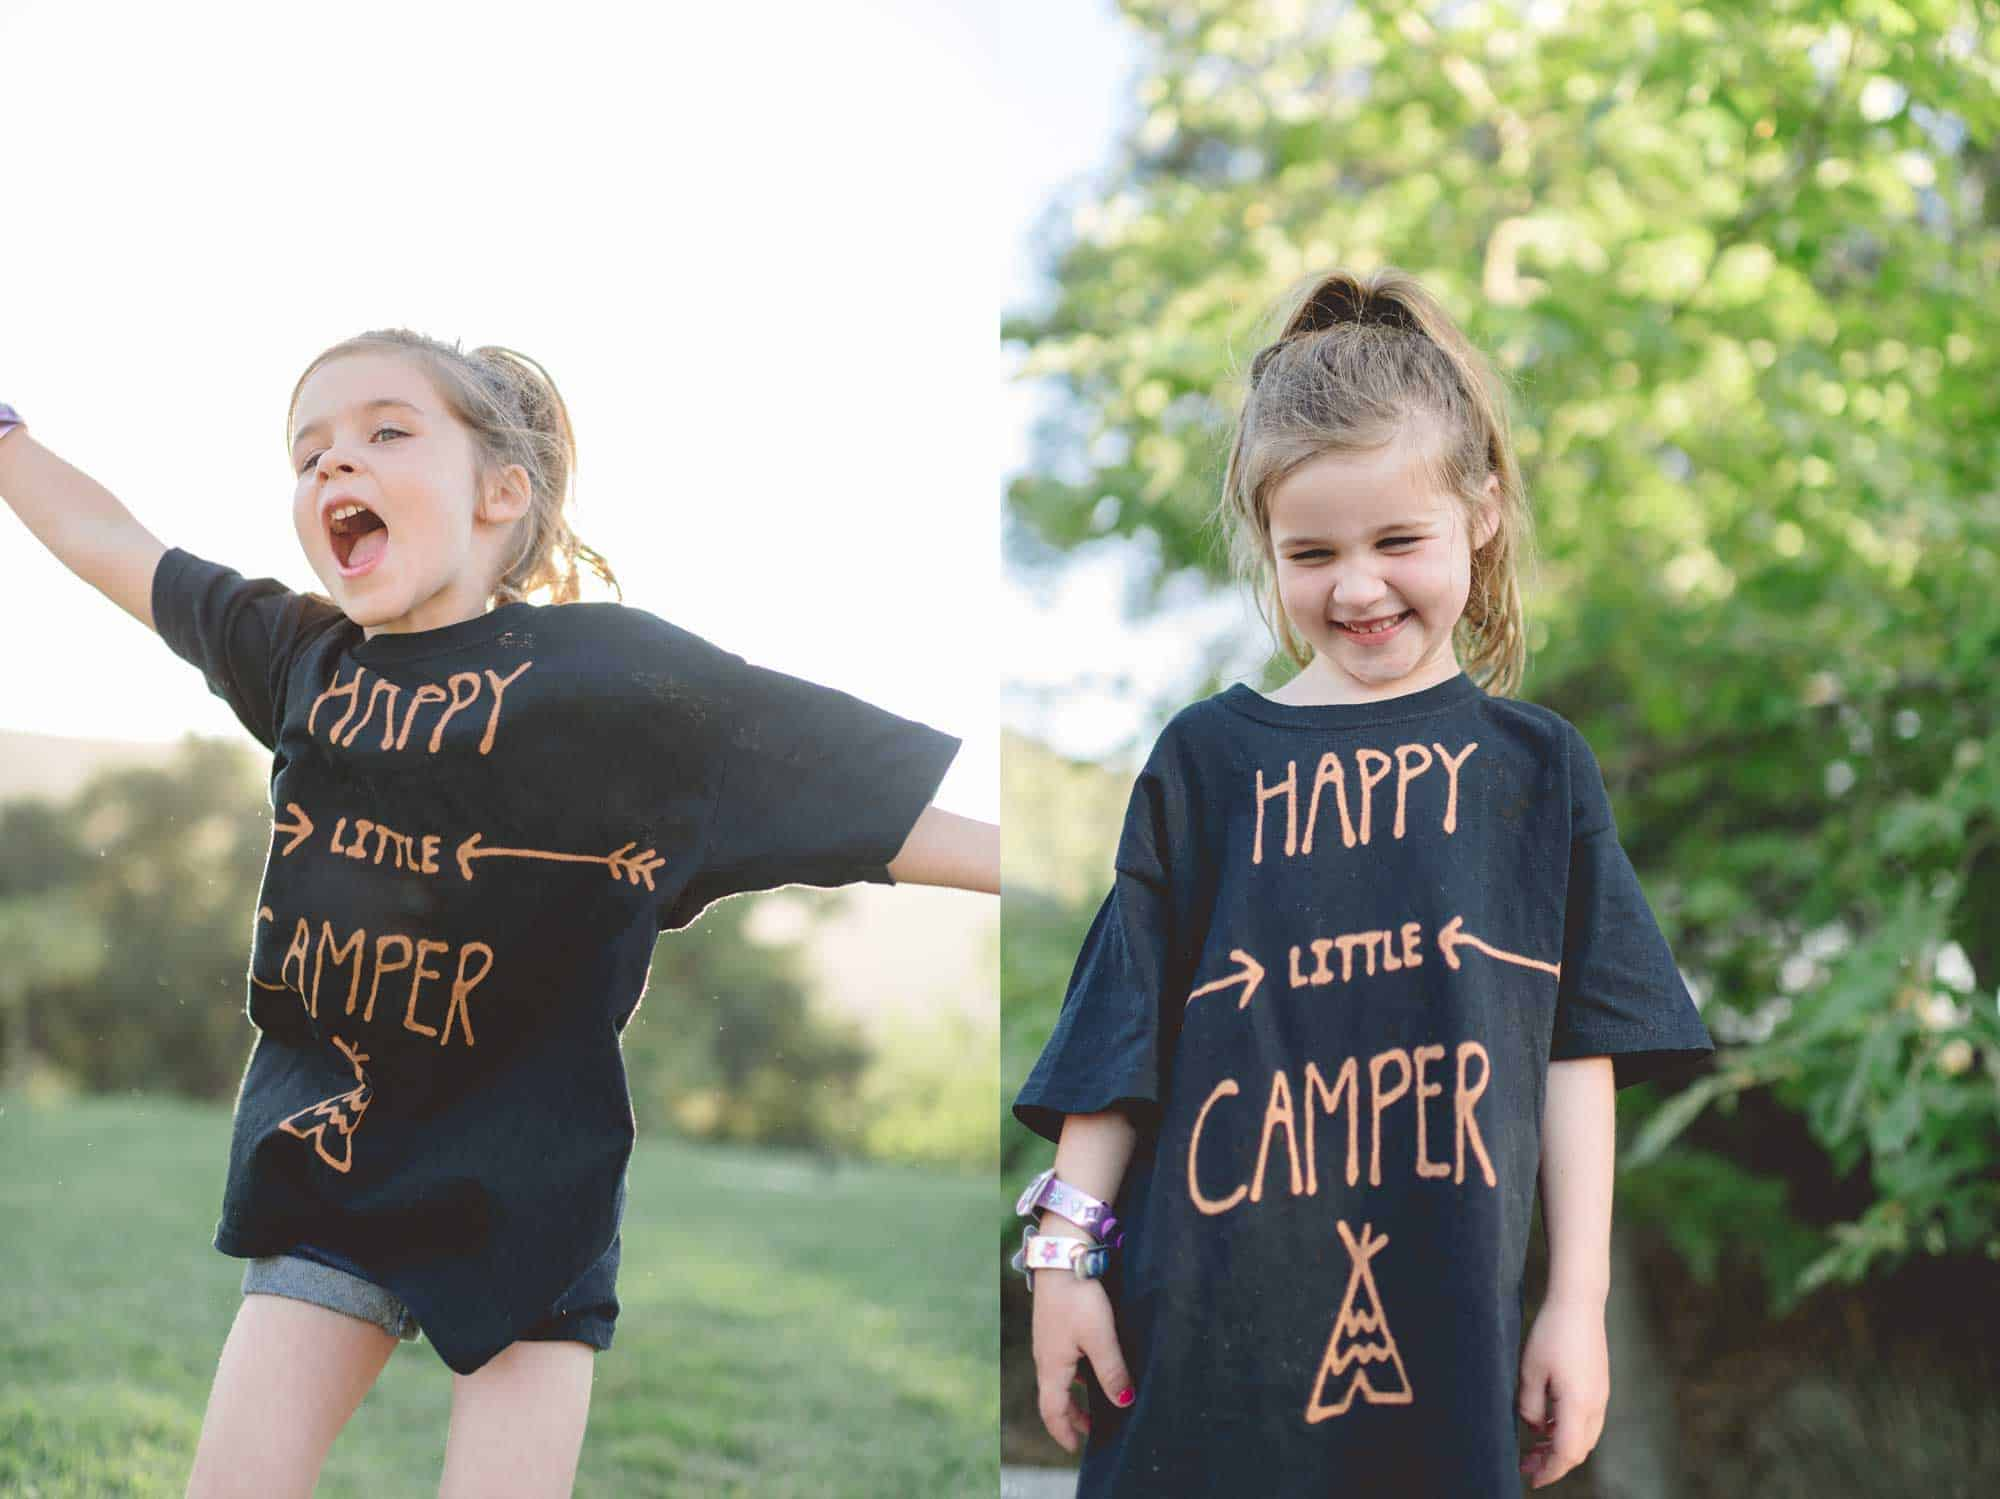 Happy Campers by Tiffani Thiessen • Photography by Rebecca Sanabria